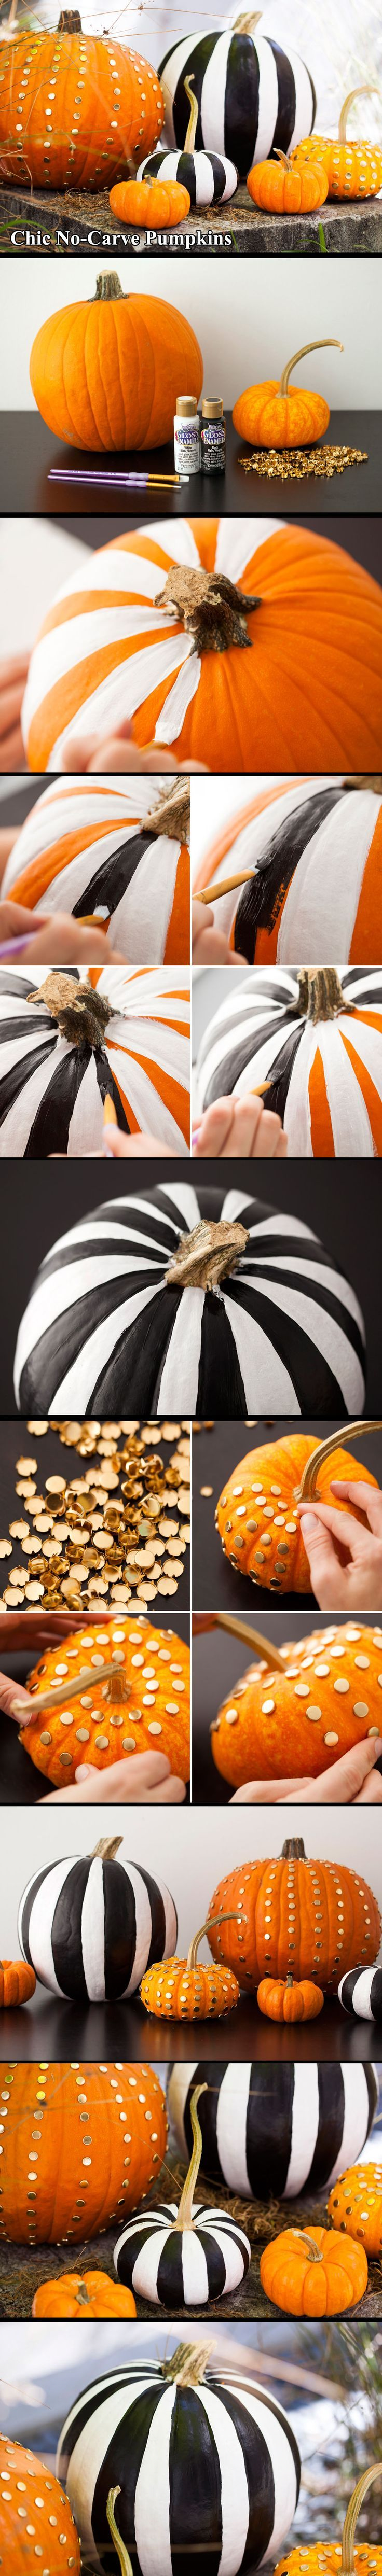 best 10+ pumpkin ideas ideas on pinterest | pumpkin carving ideas